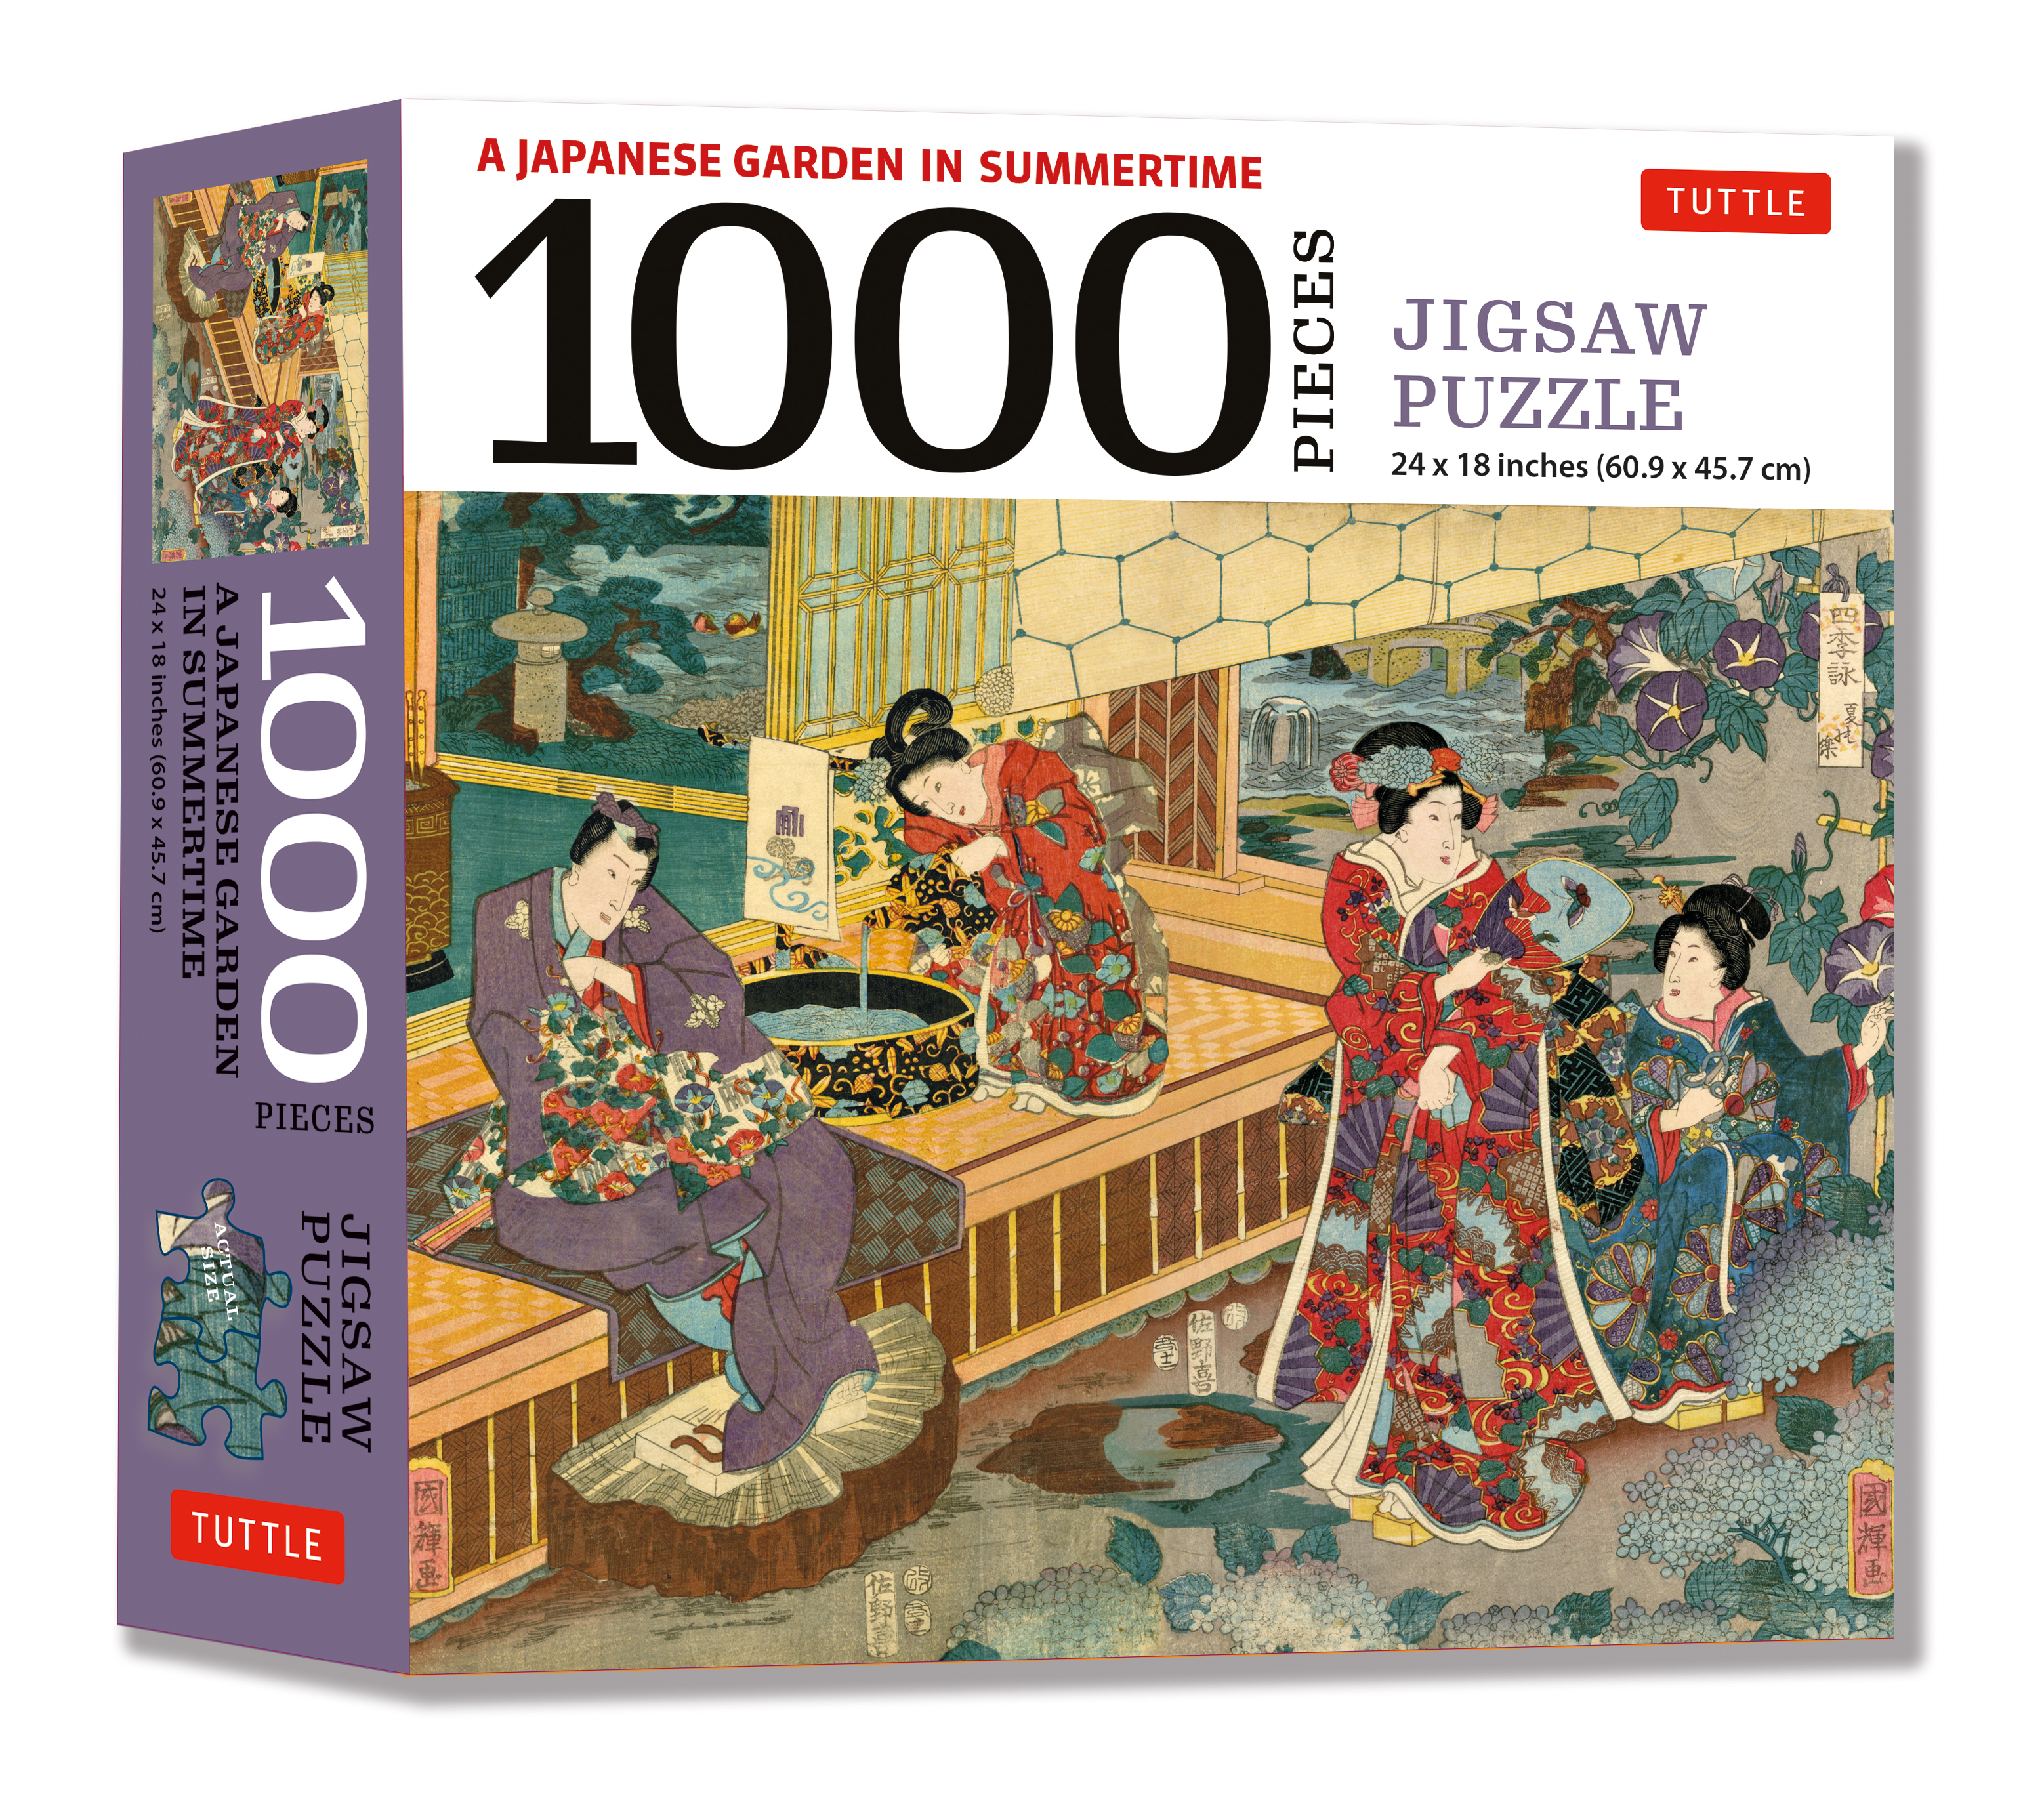 A Japanese Garden in Summertime Jigsaw Puzzle - 1,000 pieces